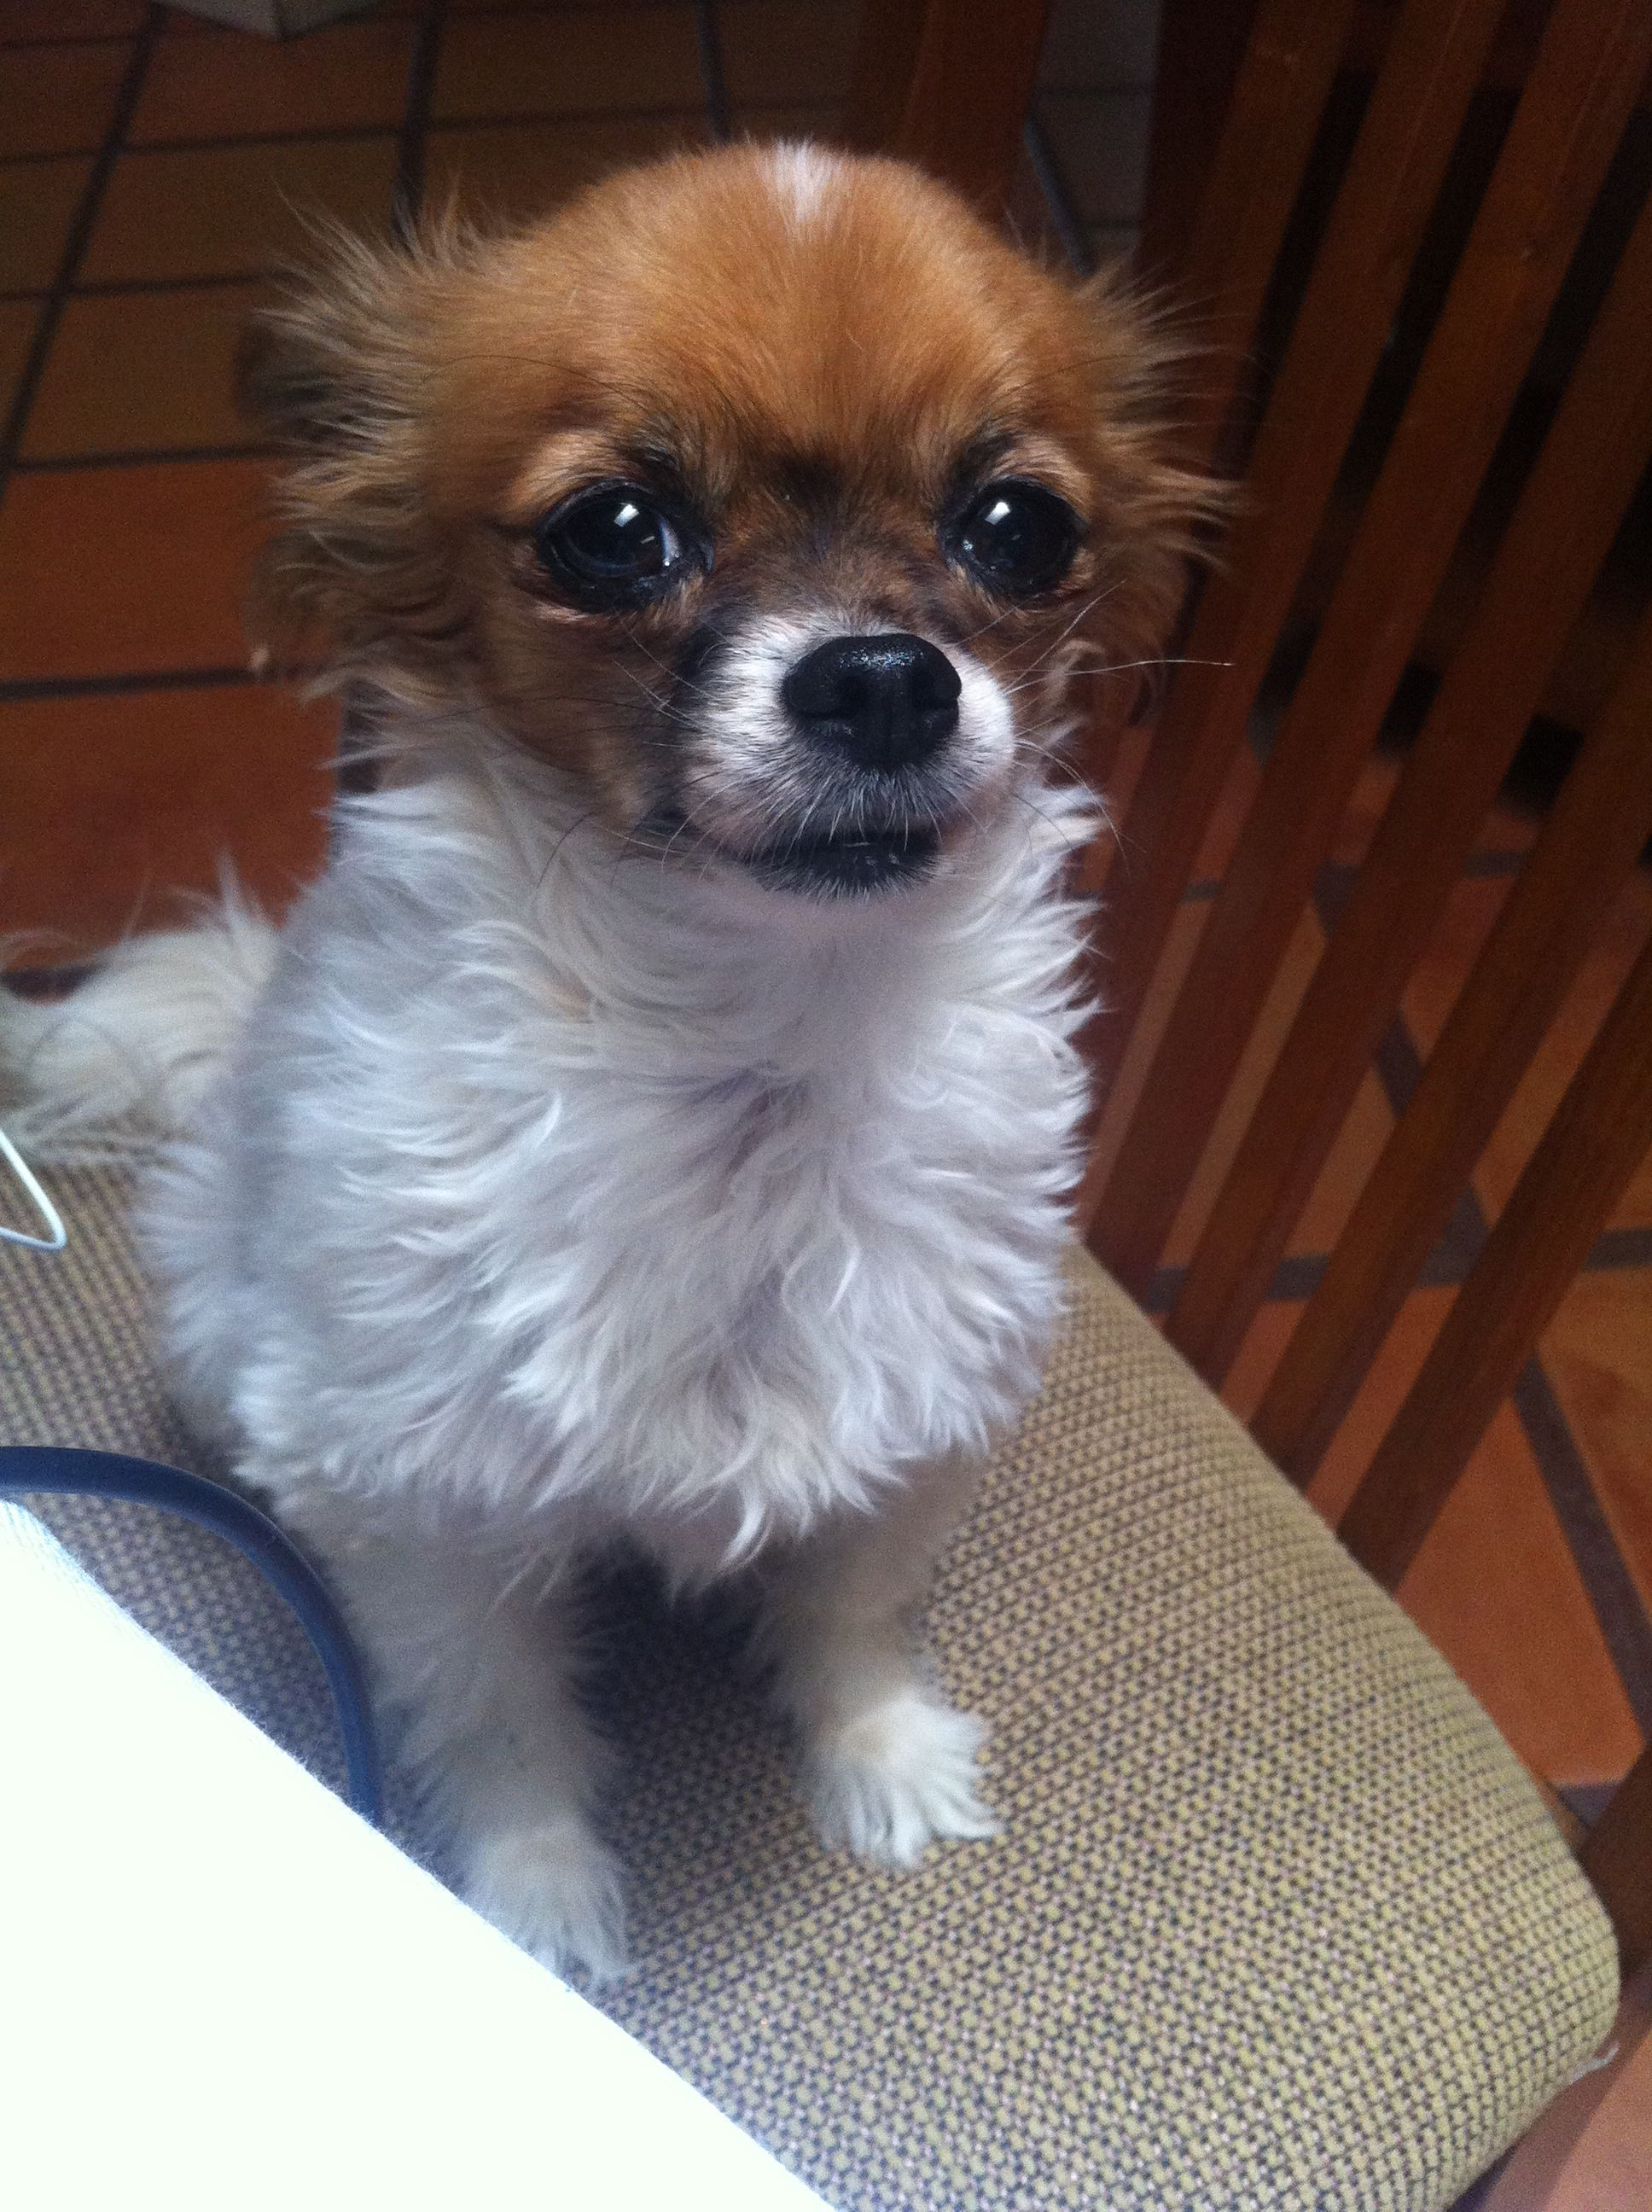 My baby love. Buttons, the papillon/chihuahua mix